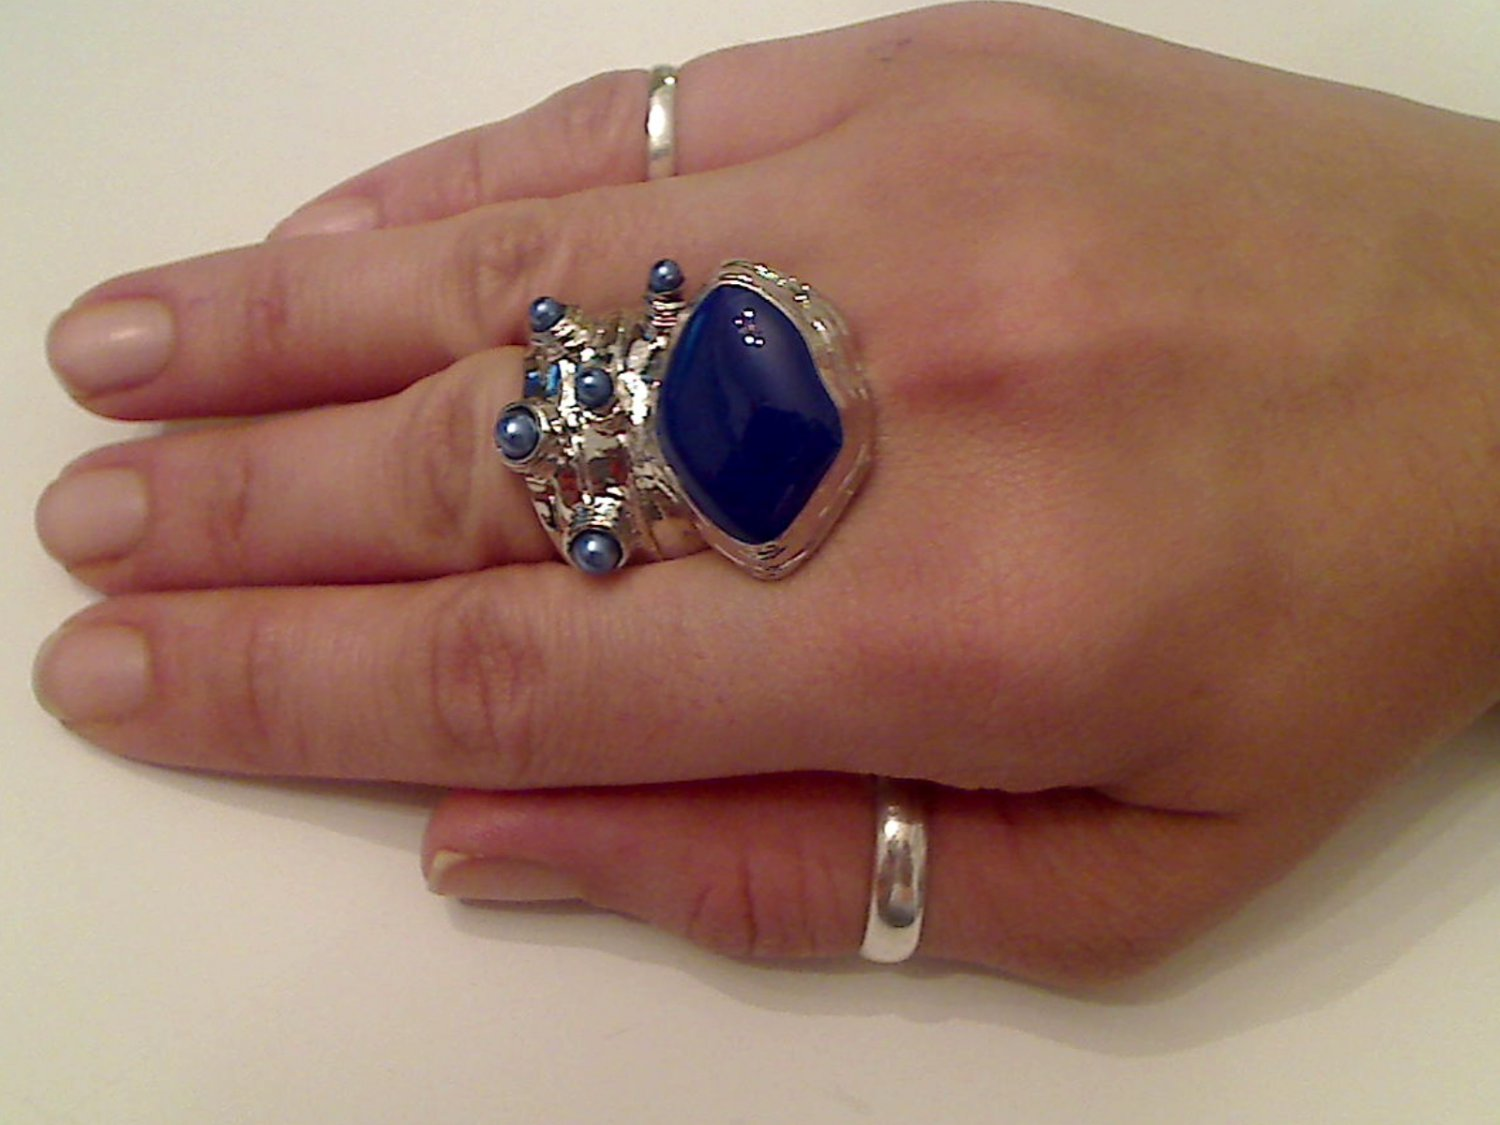 BLUE ARTY CHUNKY SPIKEY MOON KNUCKLE RING IN SILVER SIZES 7*8*9*10